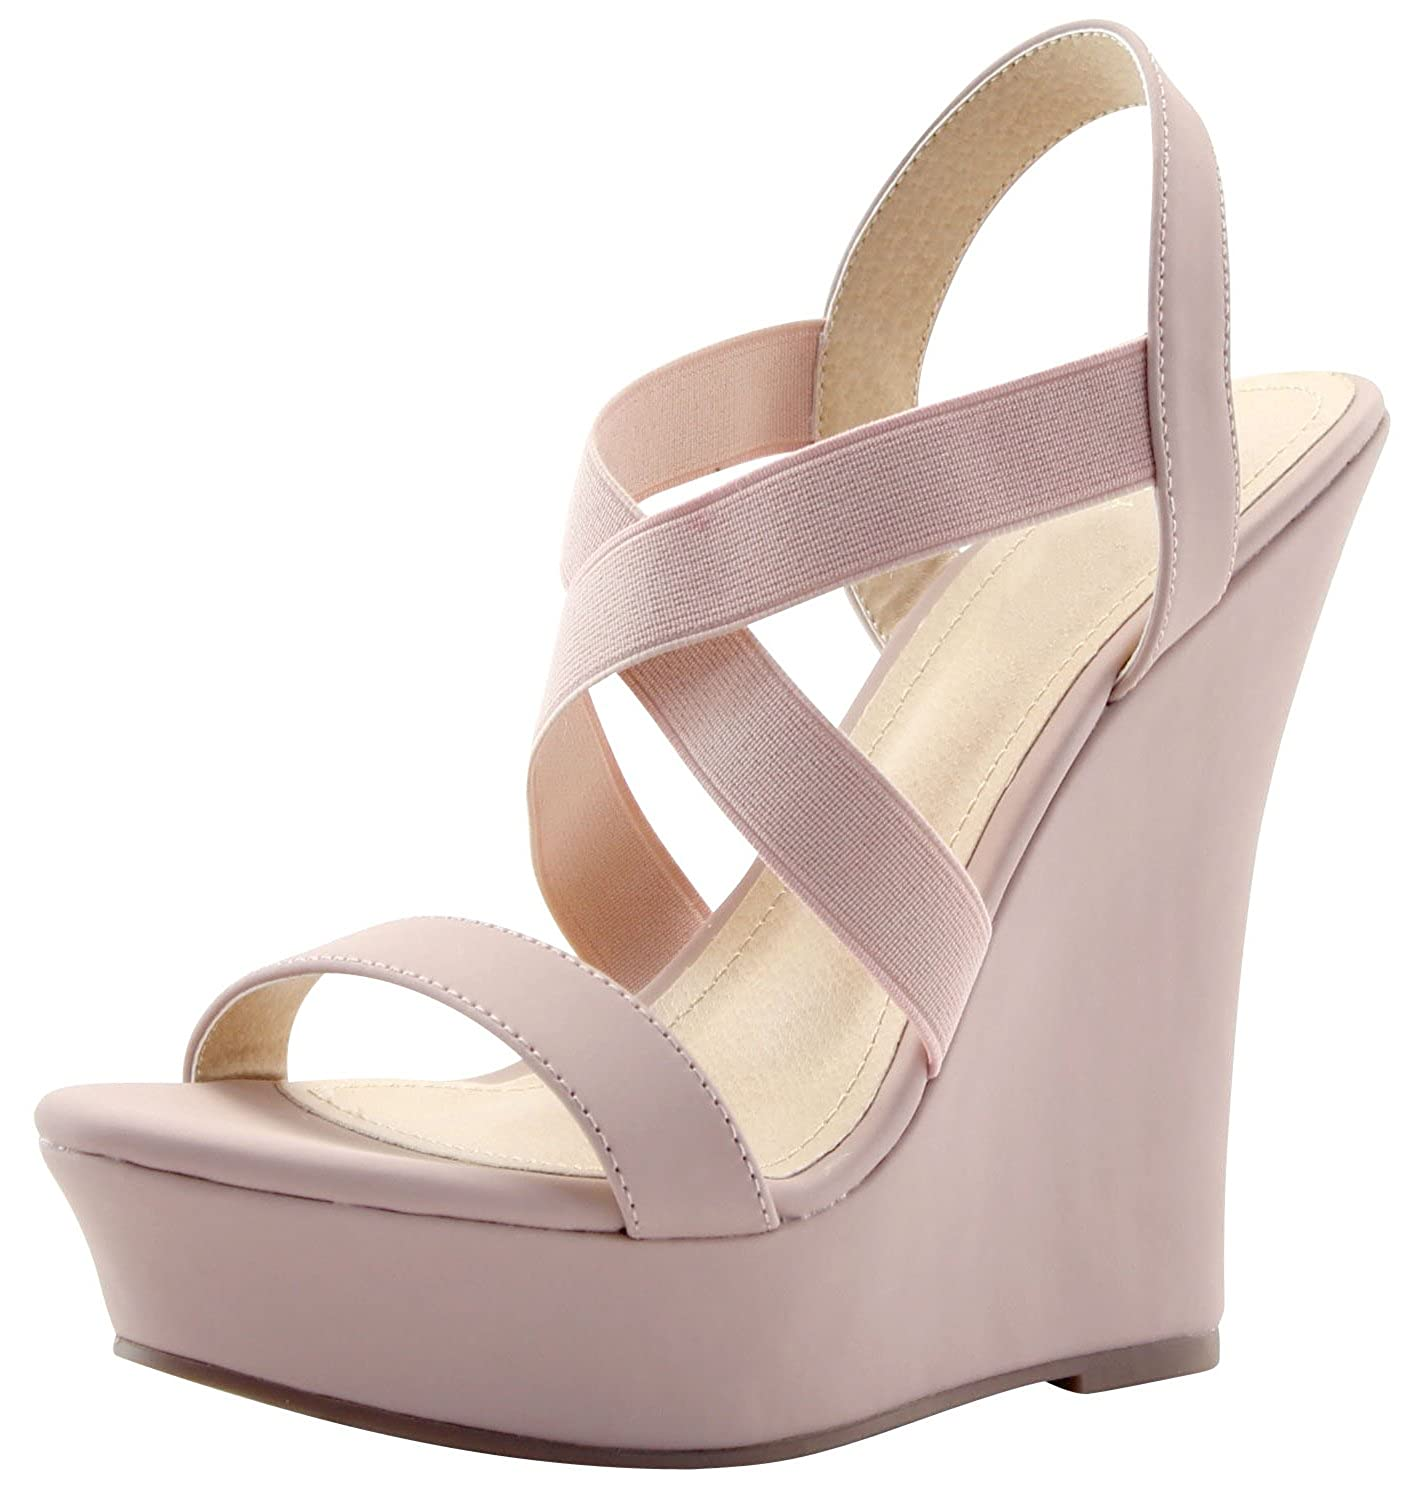 9895d64178 With stretch elastic straps and a generous platform to balance a high wedge,  this sandal will keep you comfortable in style